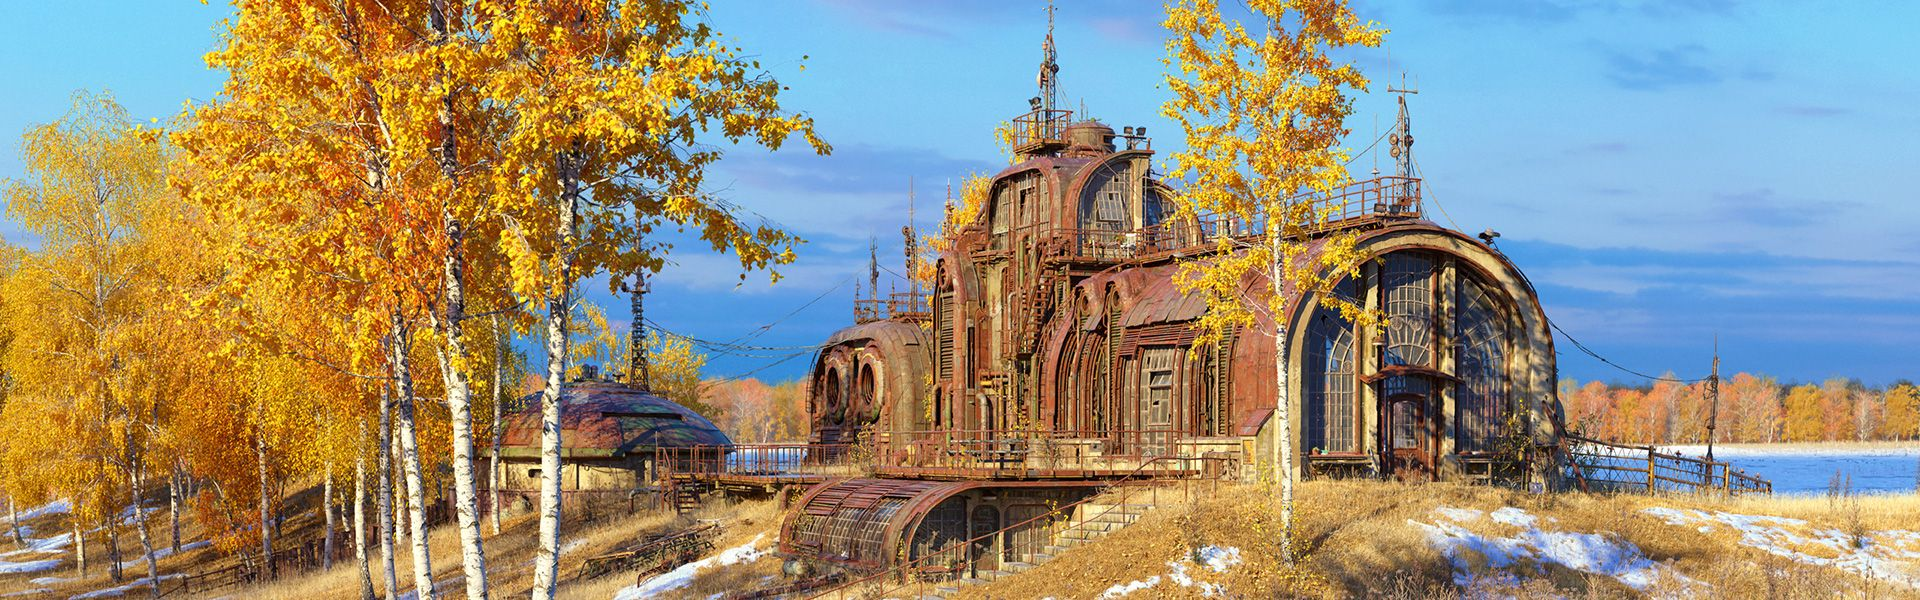 Marek denko autumn relay outpost 17 art vray 3ds max 1920x600px roadshow